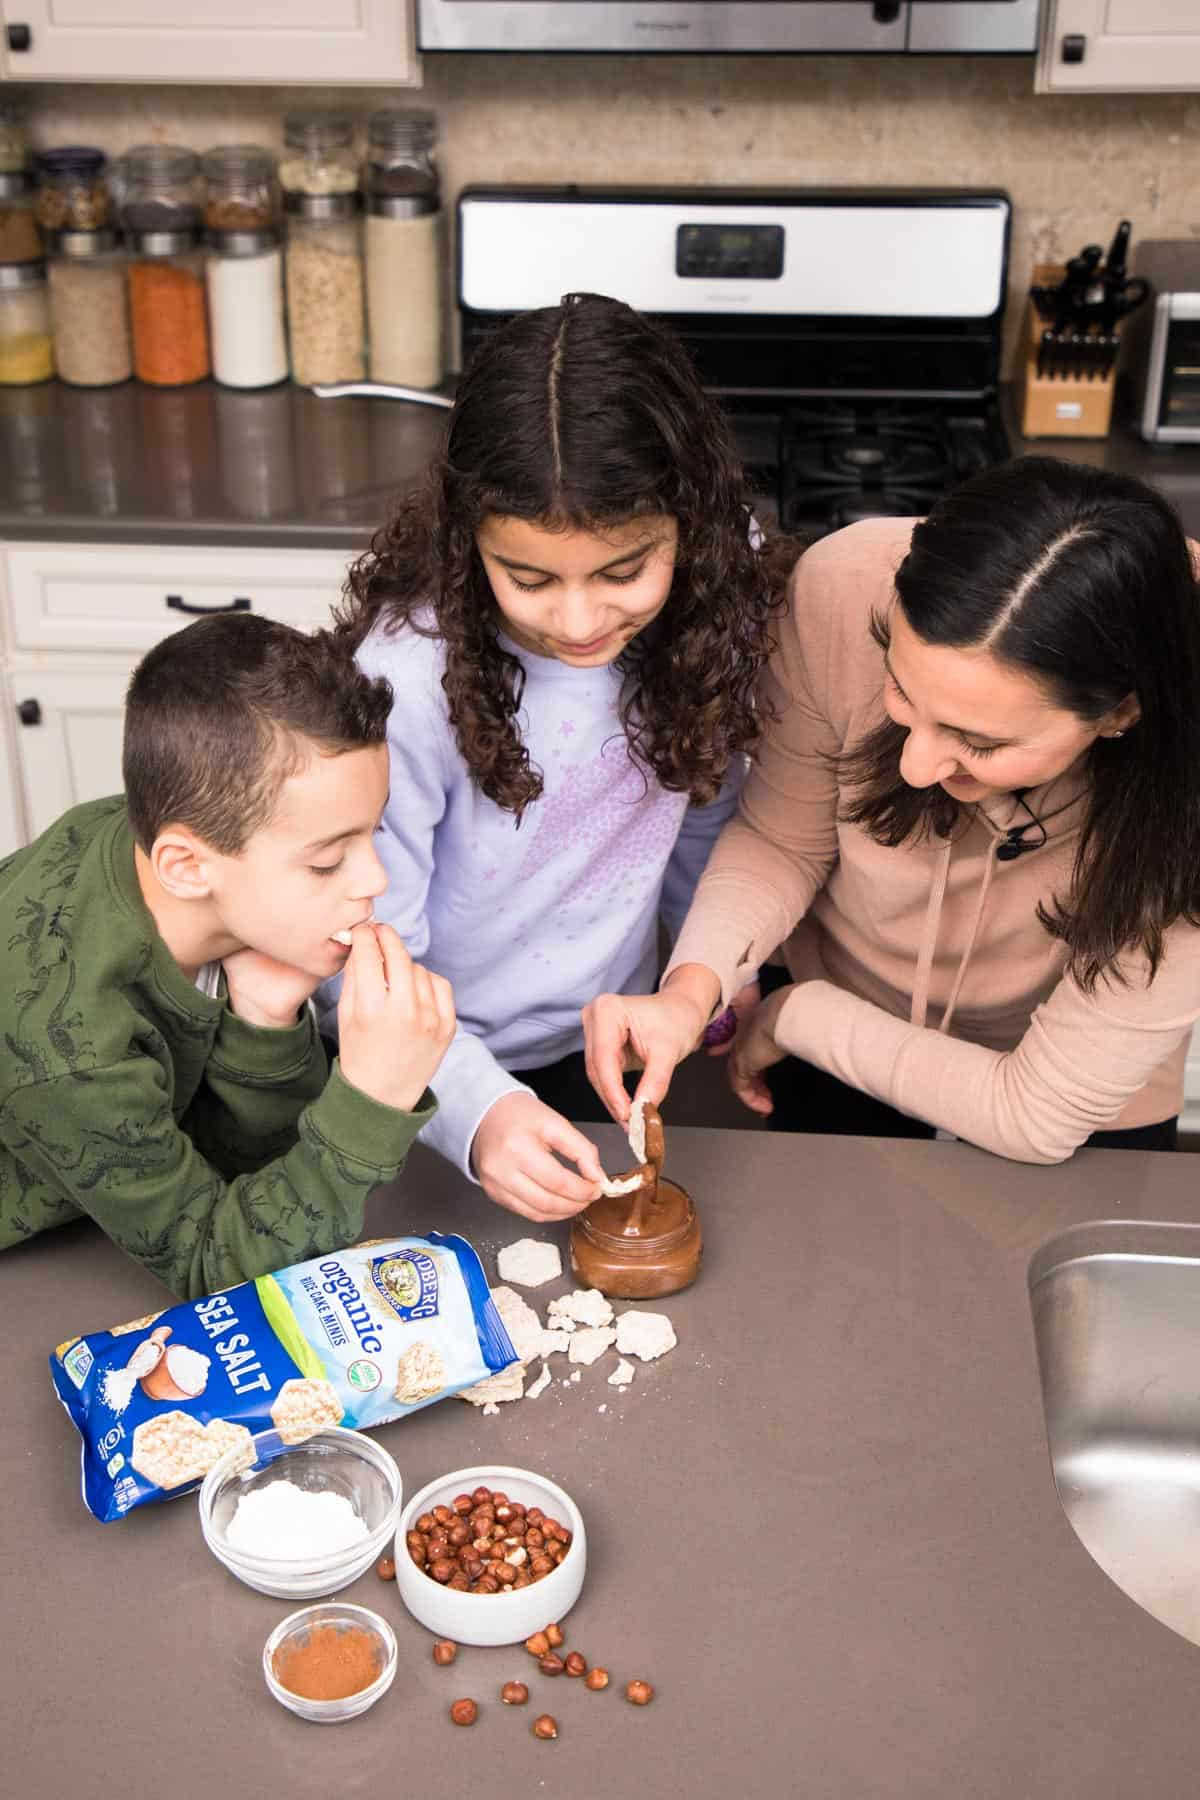 Enjoying nutella with rice with kids